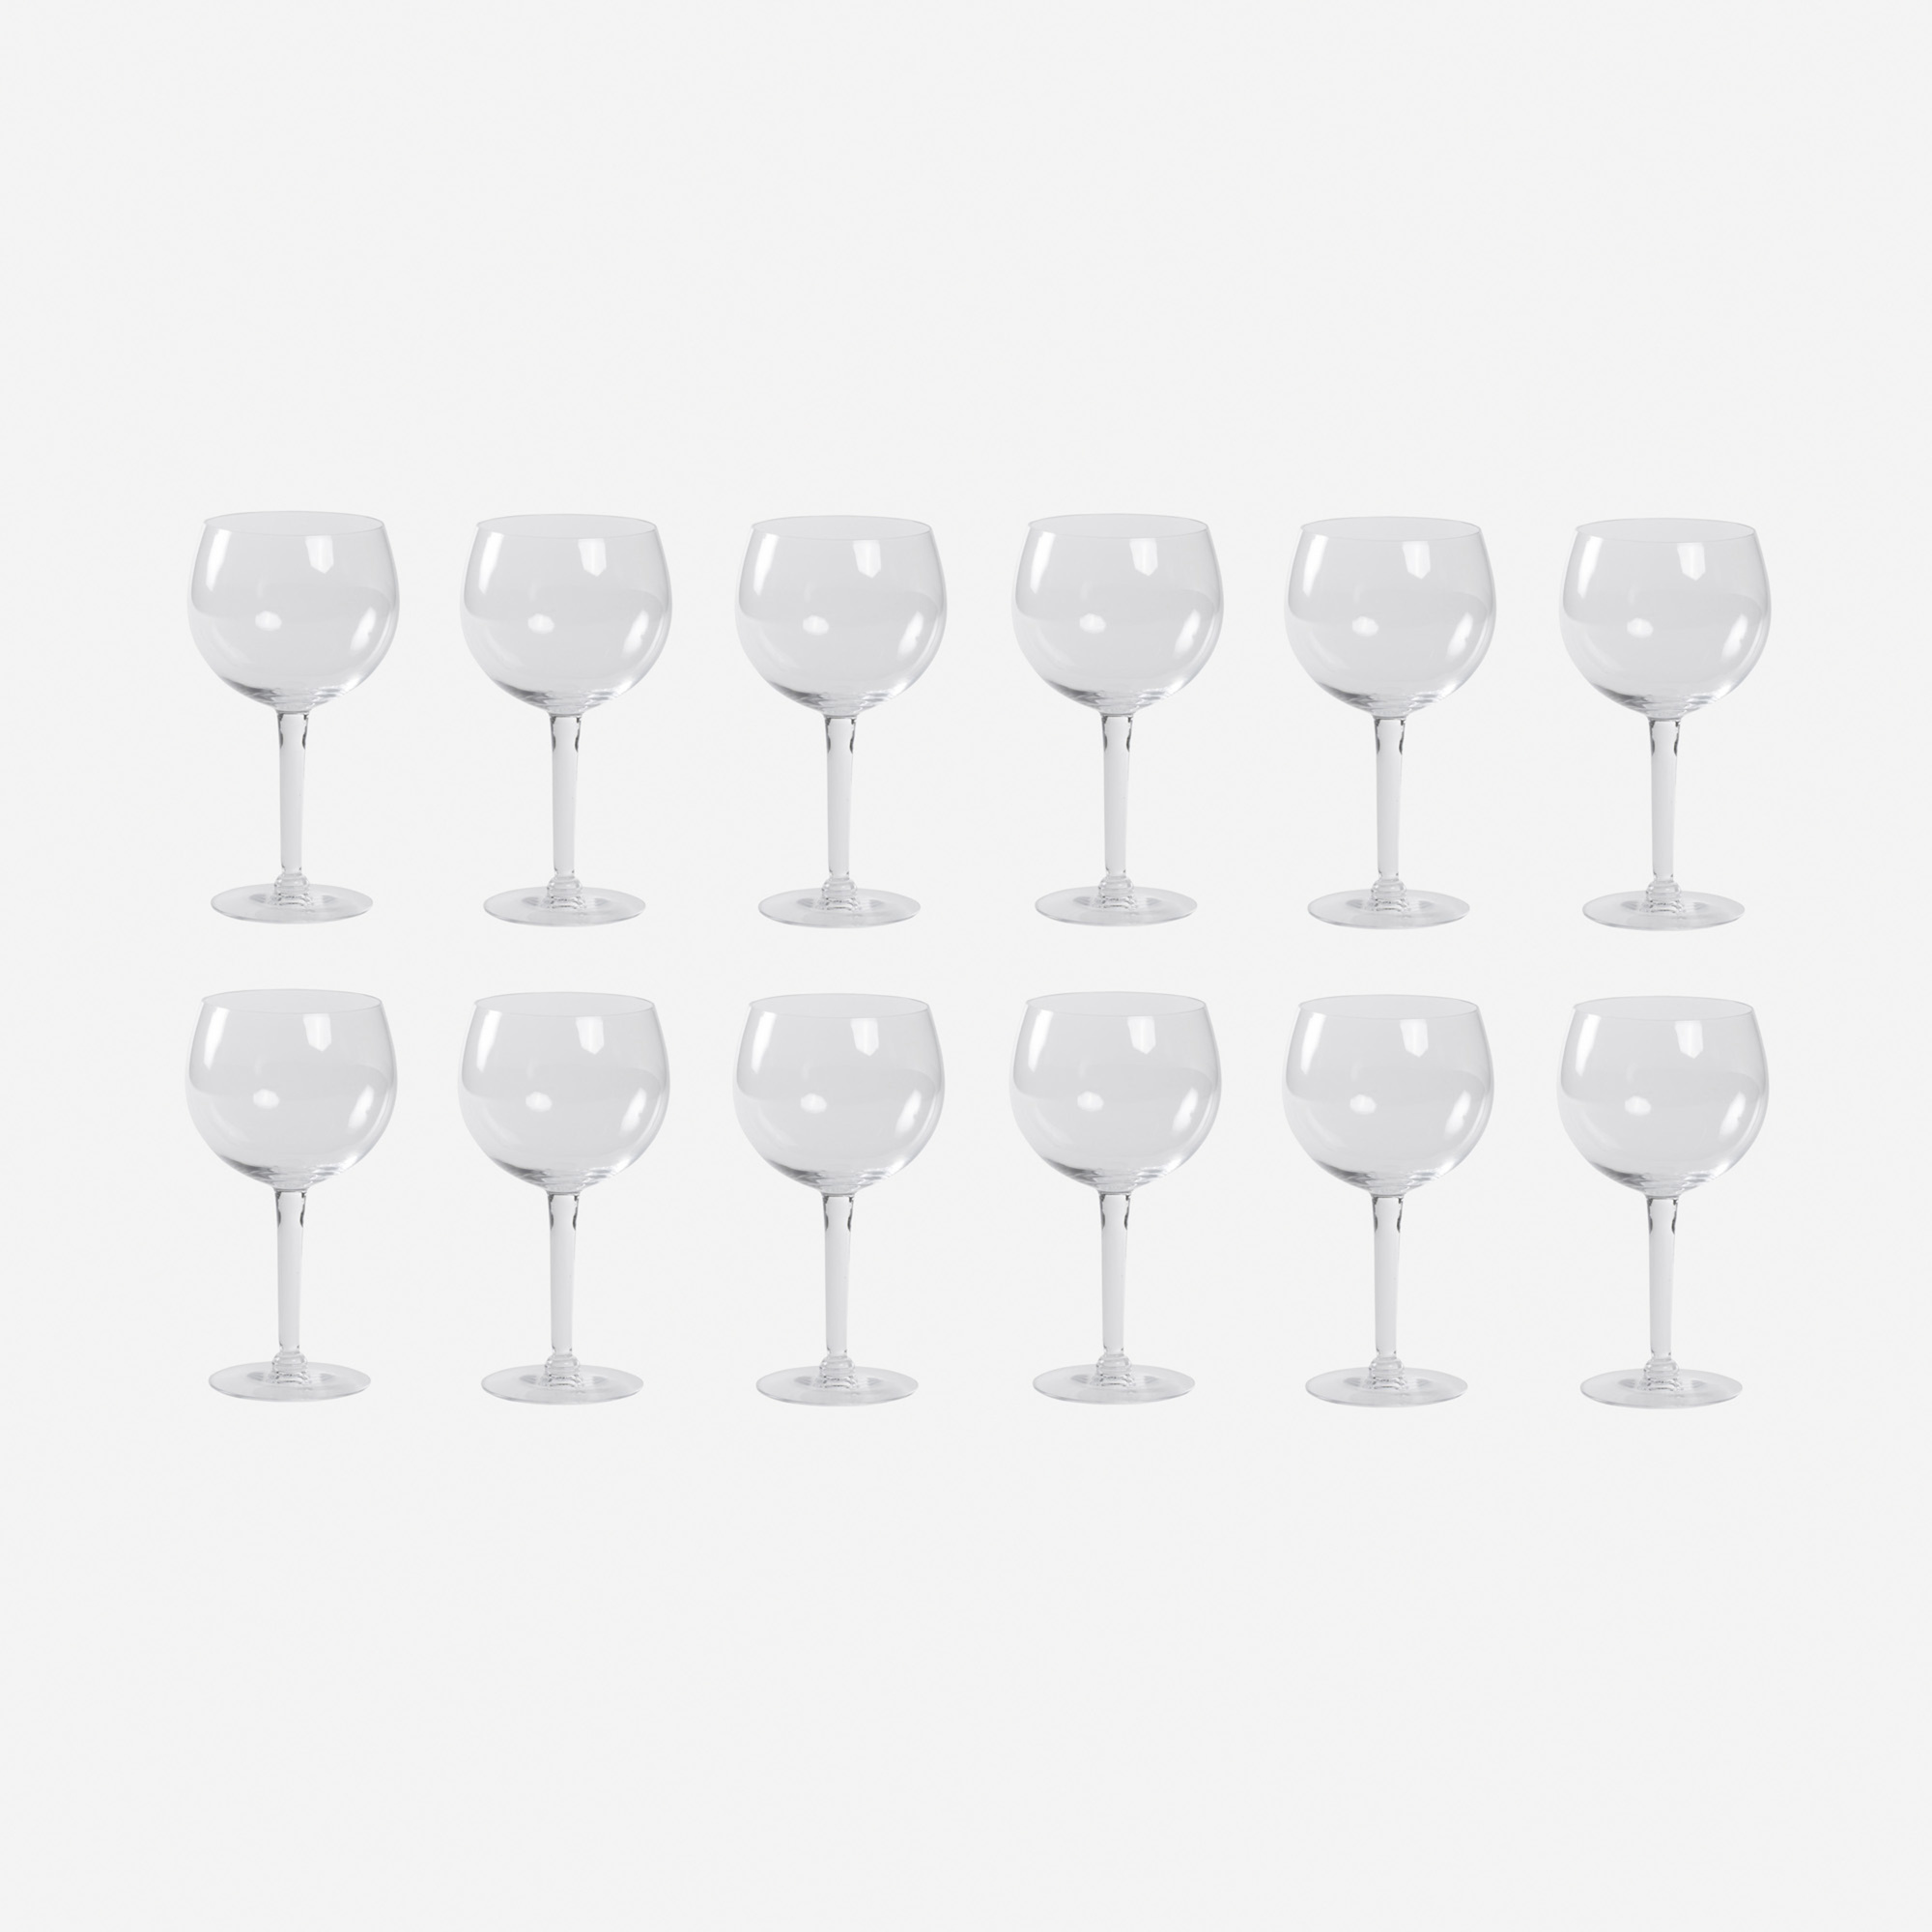 320: Garth and Ada Louise Huxtable / Red Wine glasses from The Four Seasons, set of twelve (1 of 1)